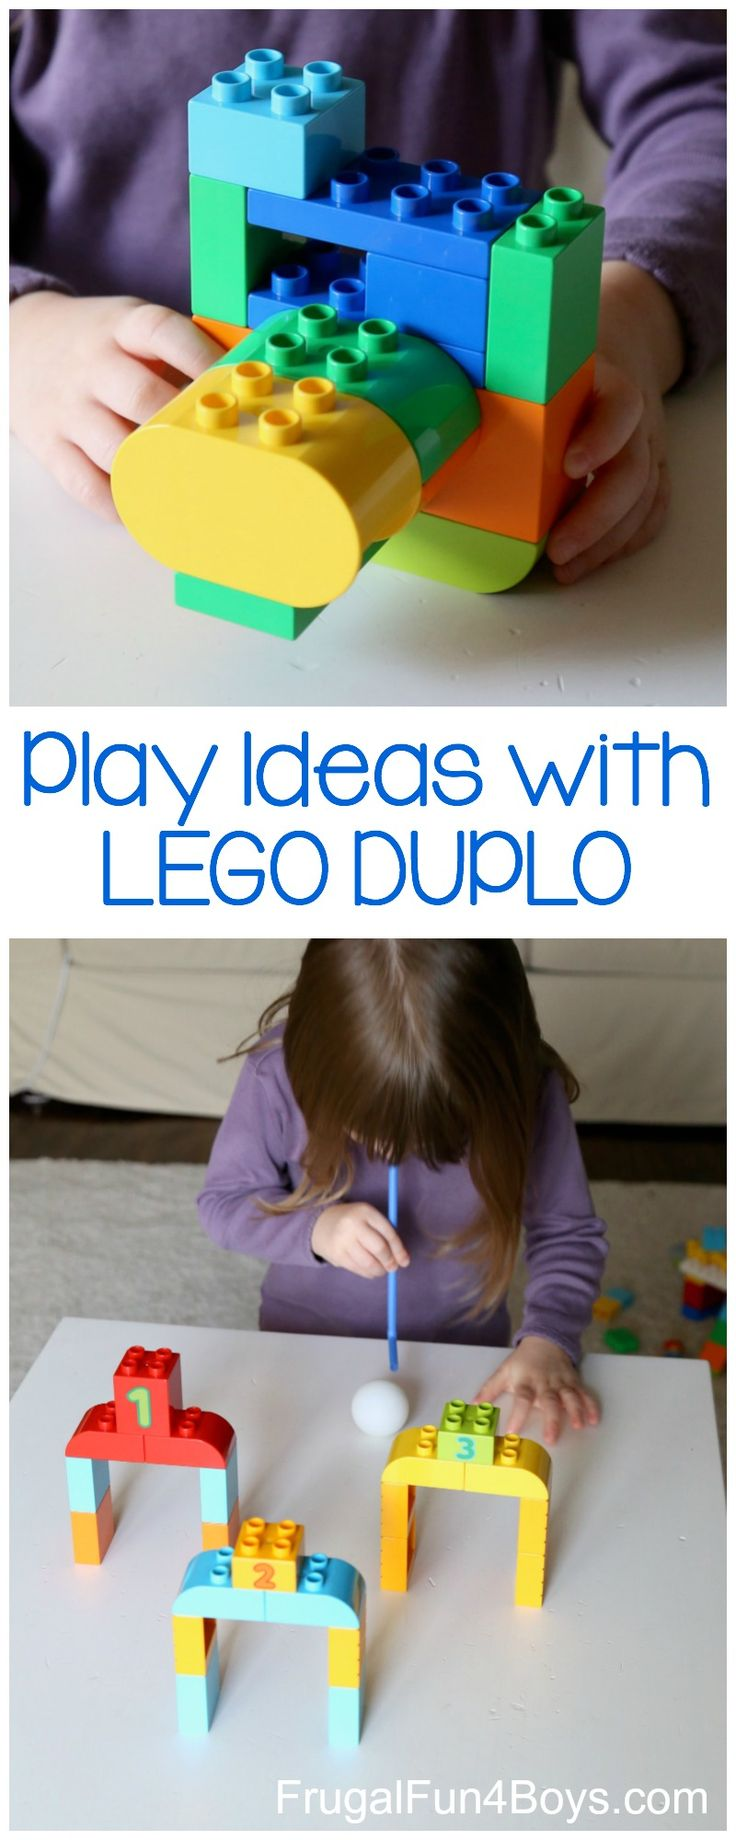 Play ideas for preschoolers with LEGO DUPLO bricks